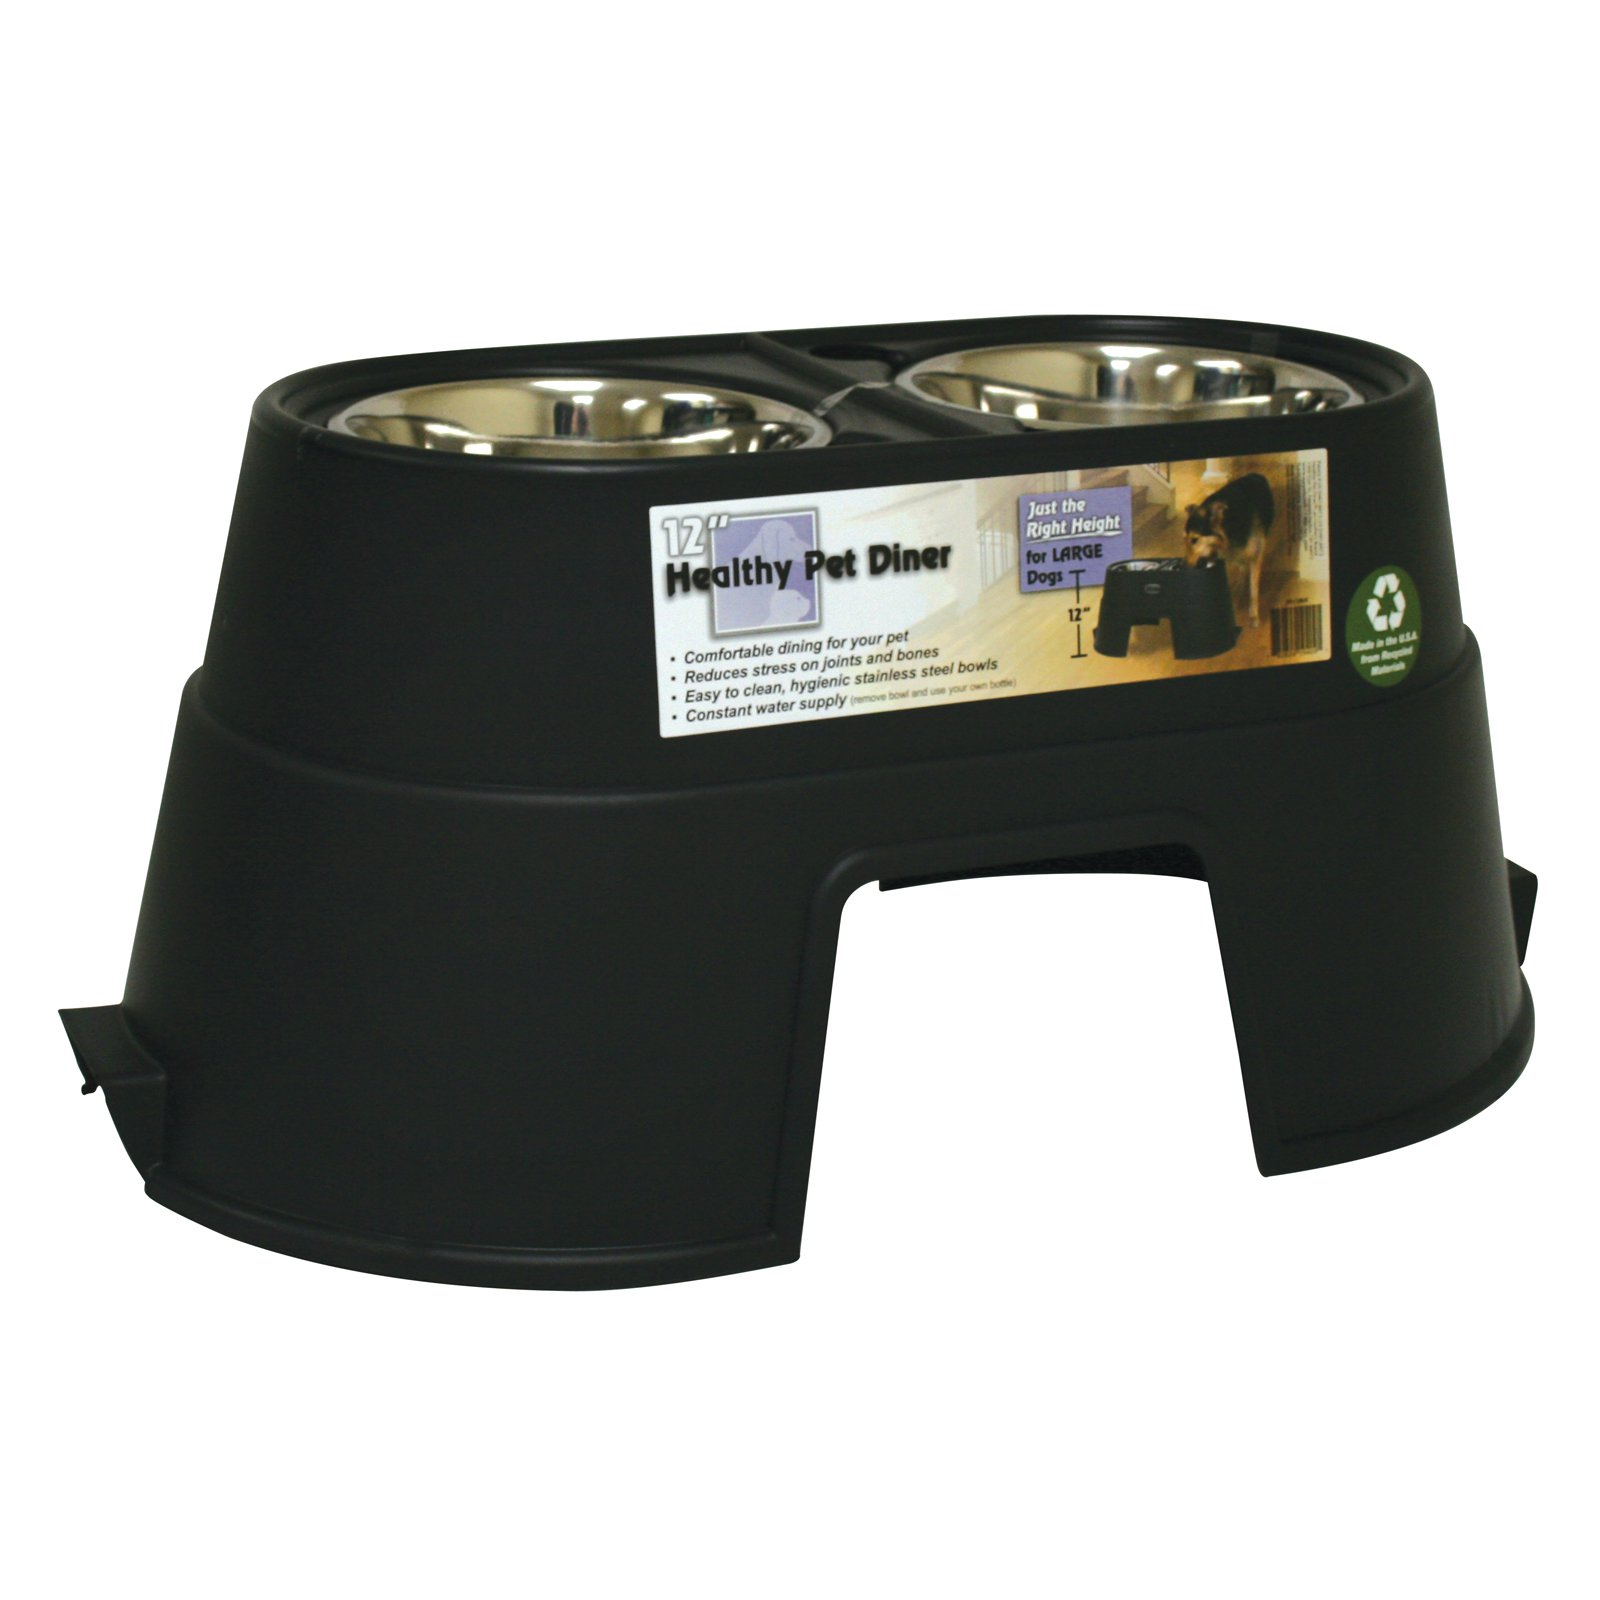 healthy pet diner double dog bowl feeder recycled black walmartcom - Dog Bowls